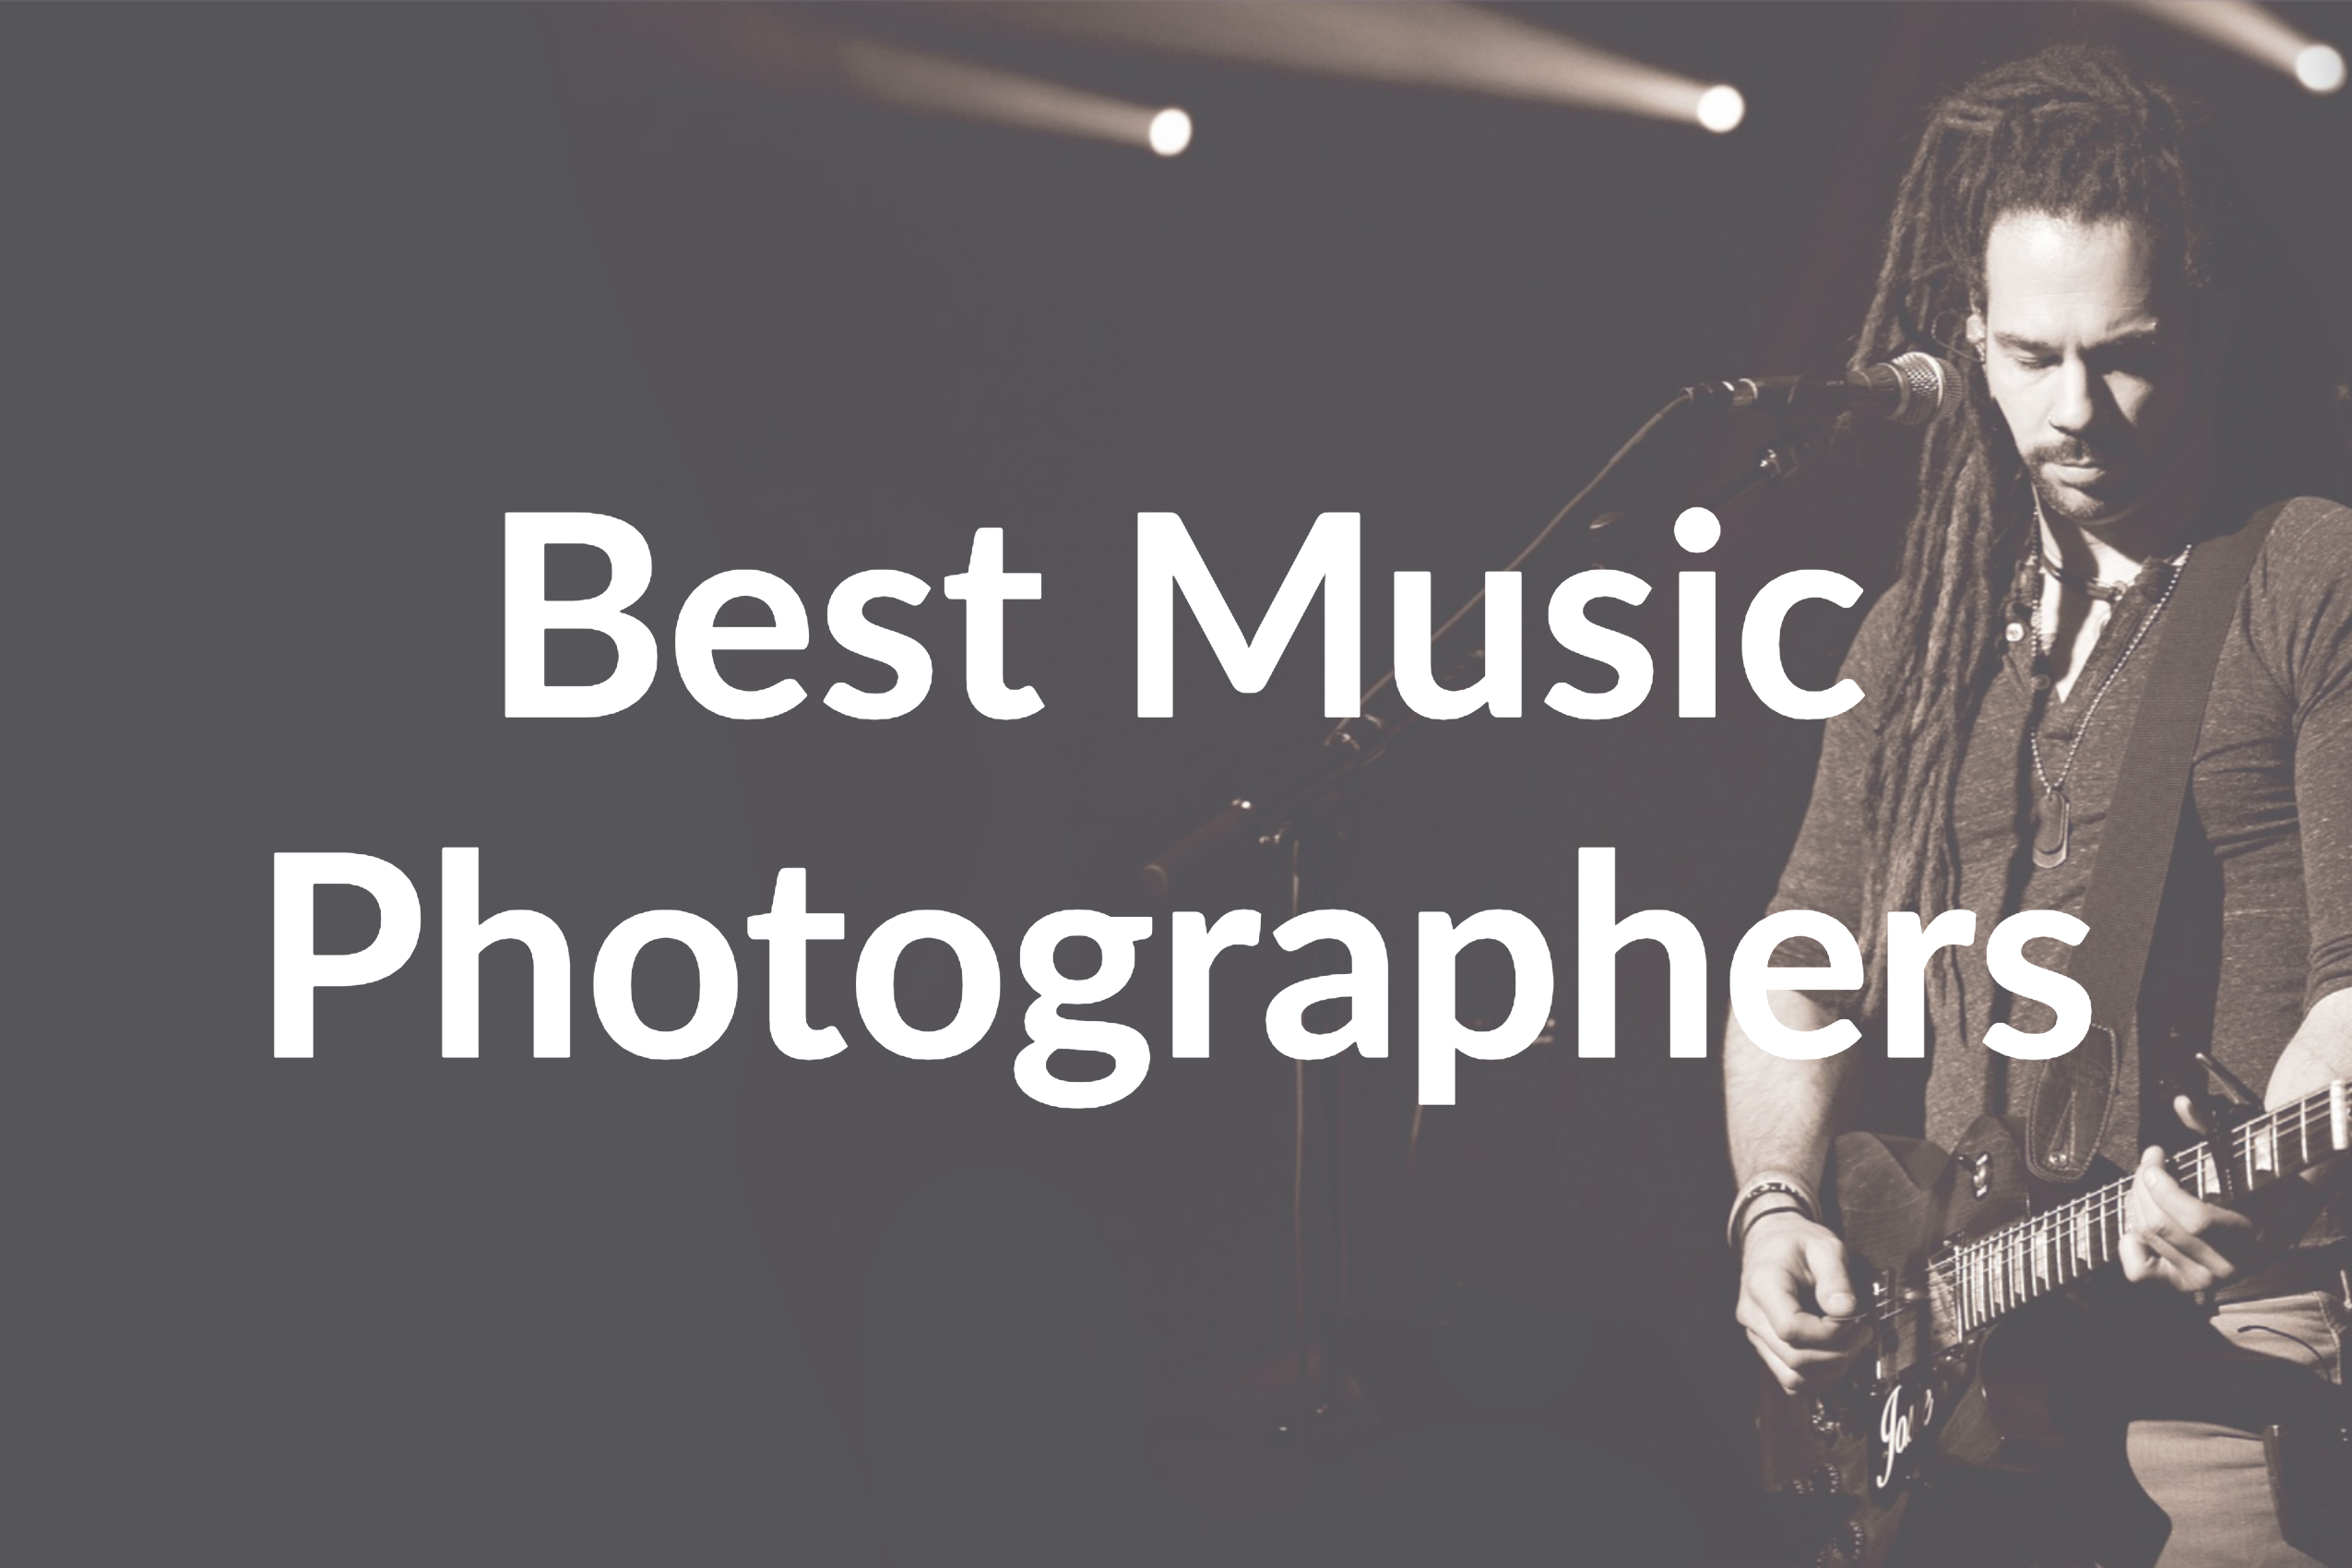 The 7 Best Music Photographers of 2019 You Need to Check Out